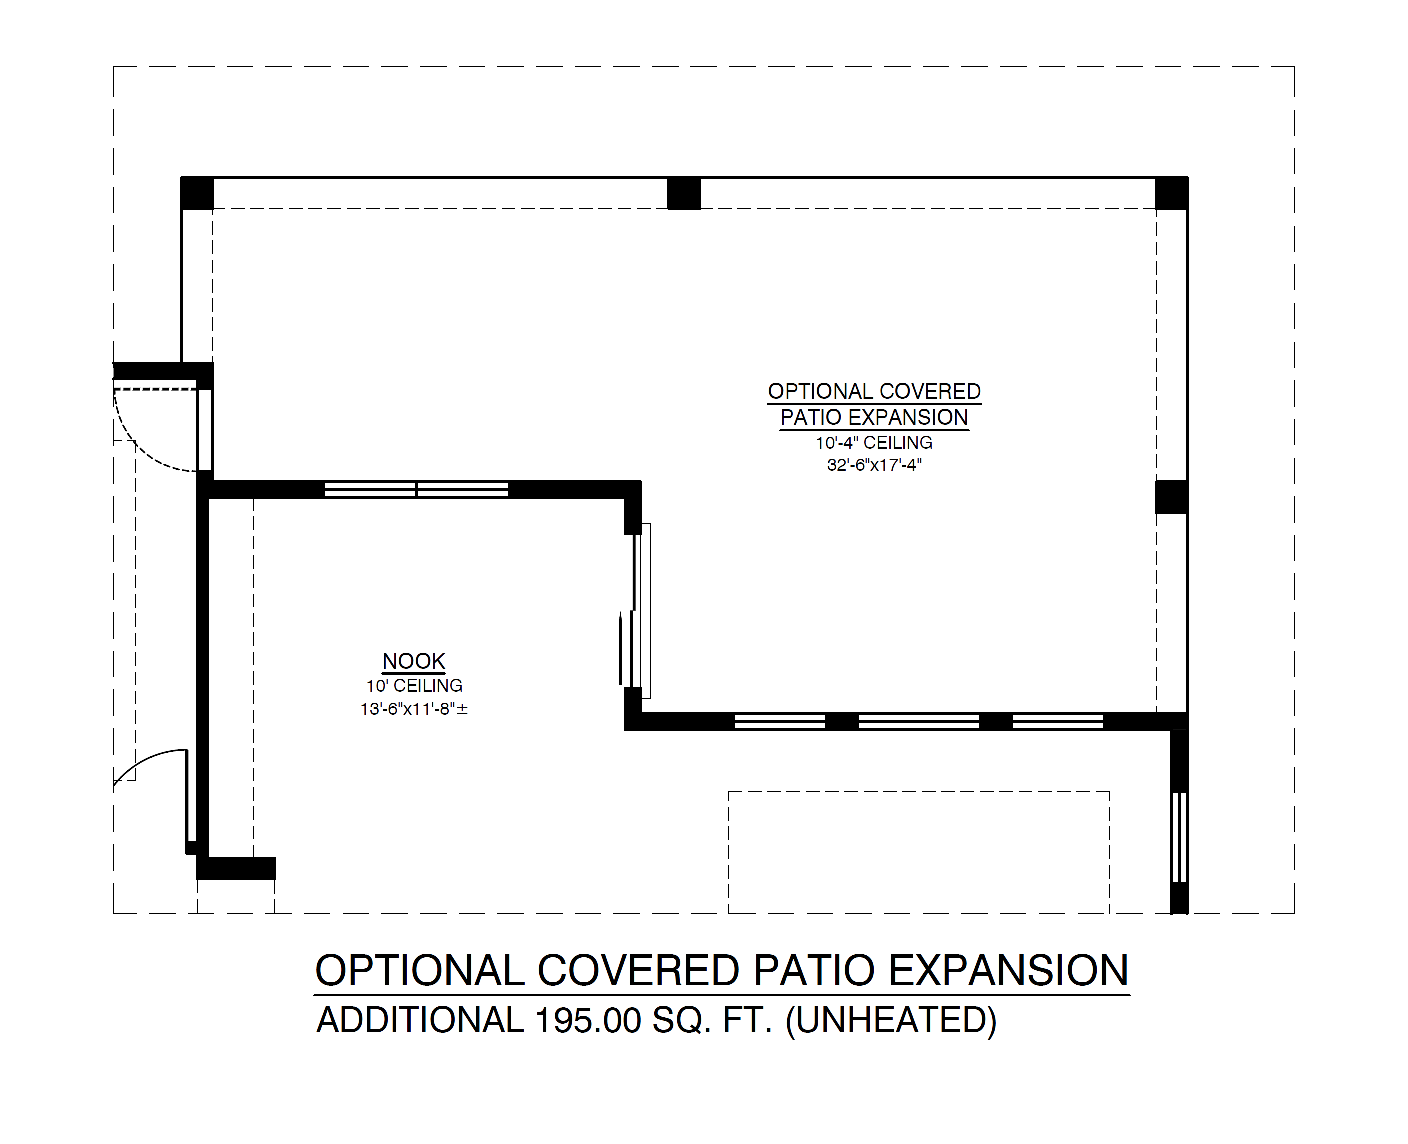 Optional Covered Patio Expansion